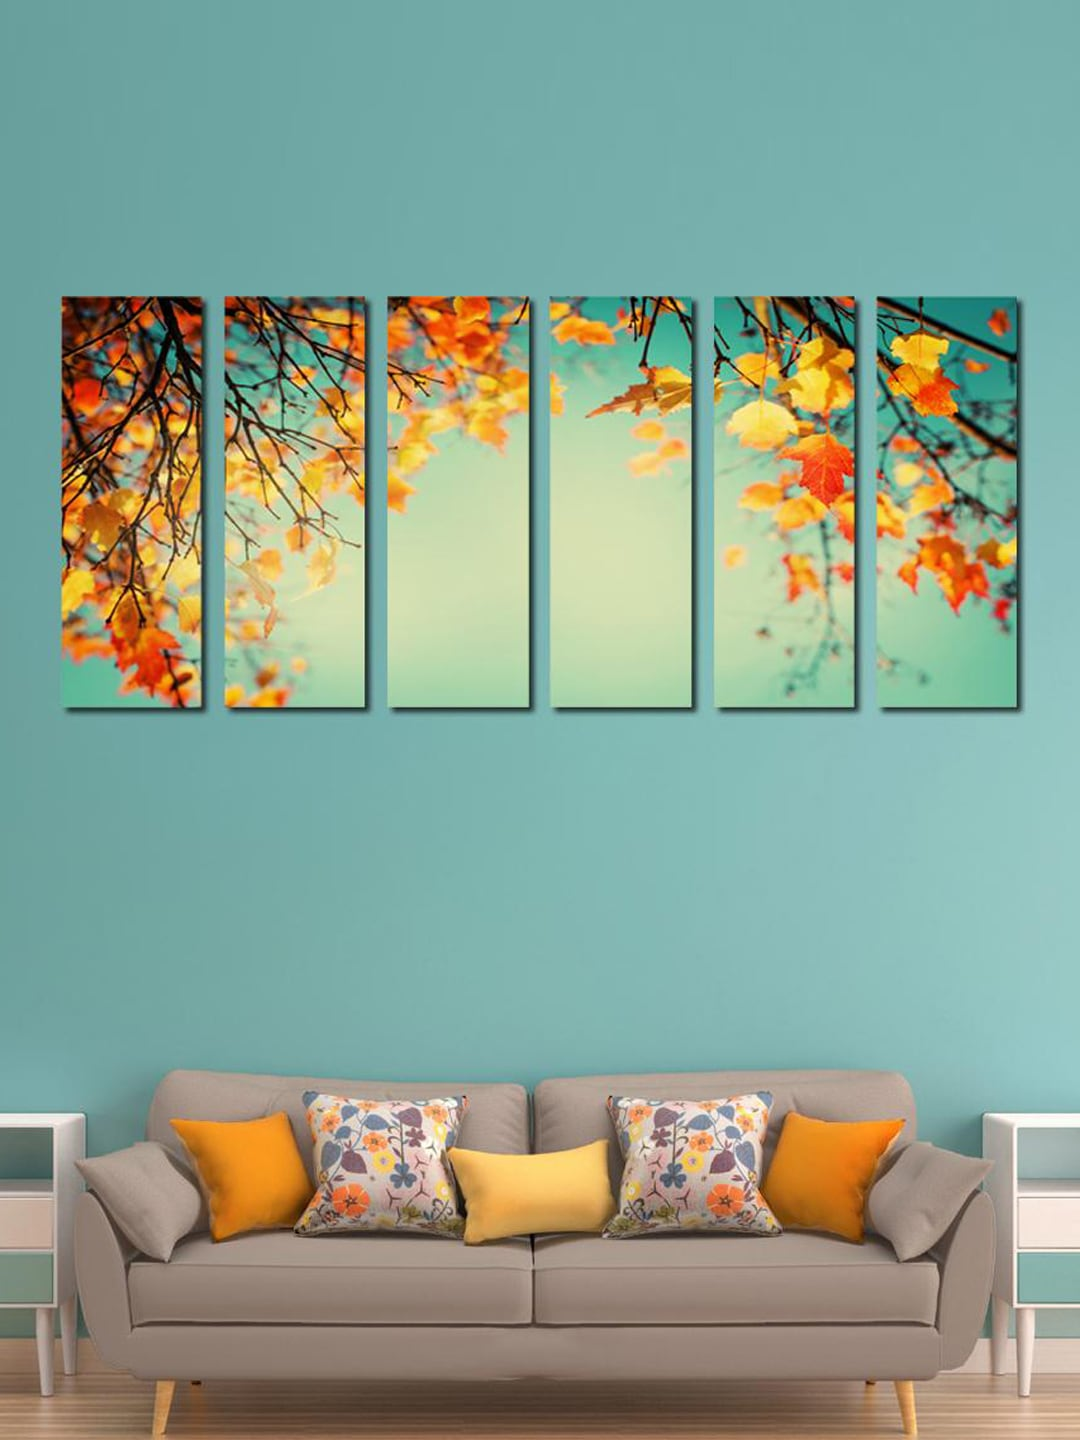 Wall decor buy modern wall decor online in india